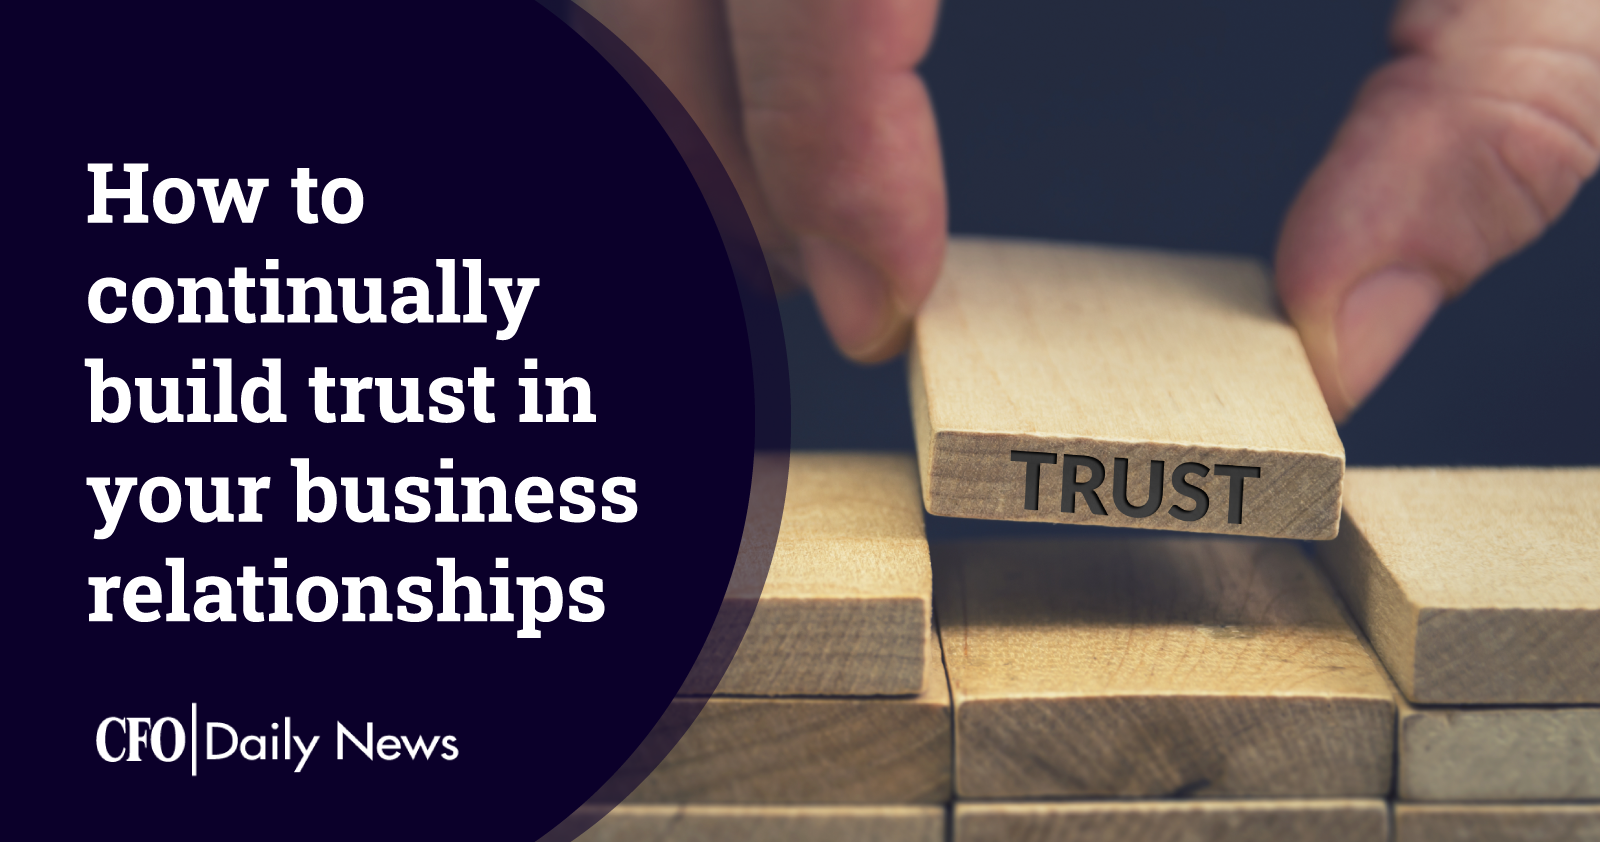 how to continually build trust in your business relationships